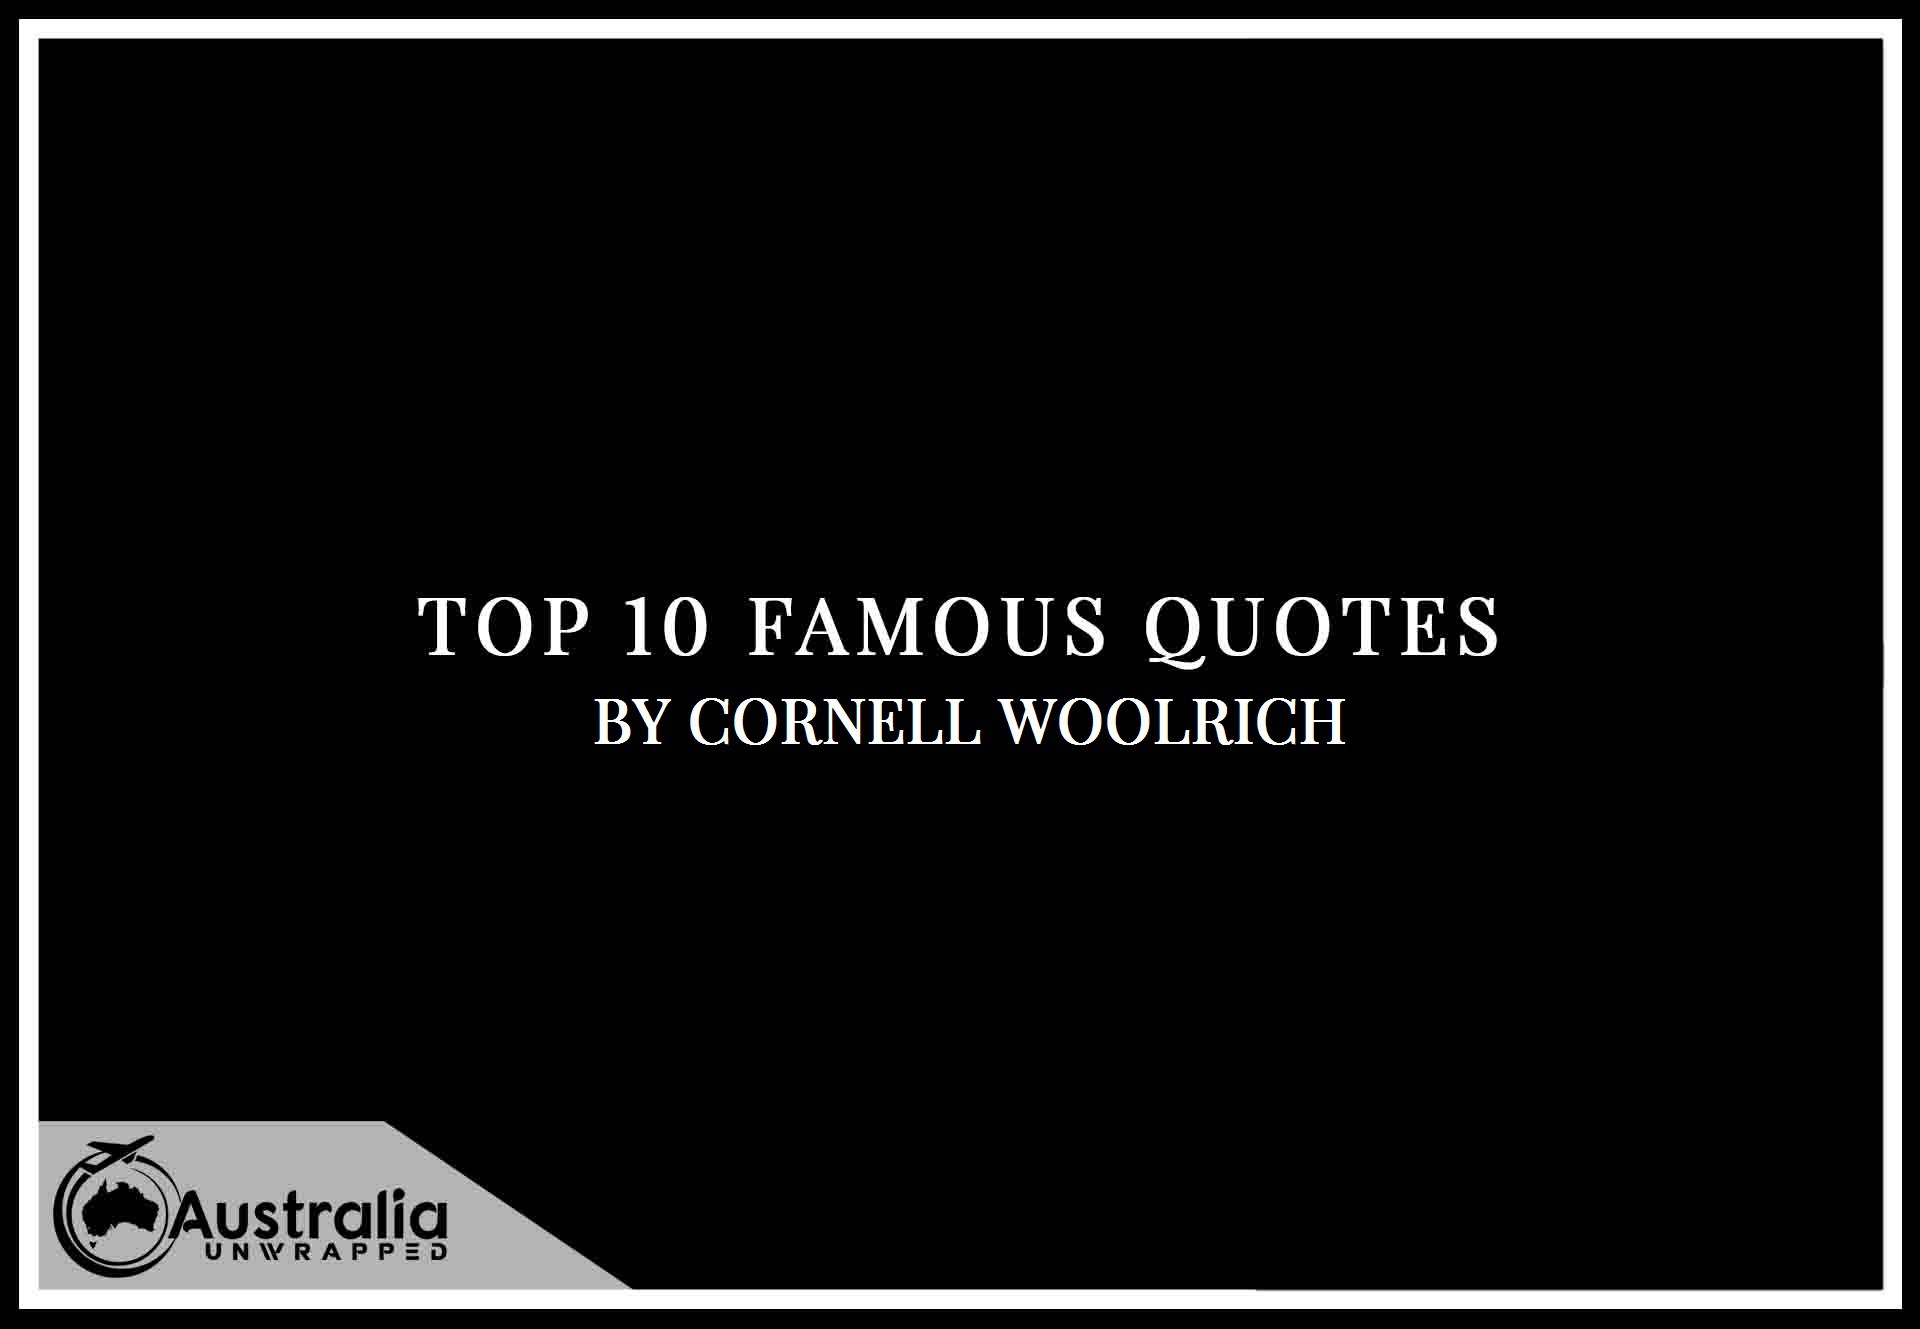 Cornell Woolrich's Top 10 Popular and Famous Quotes